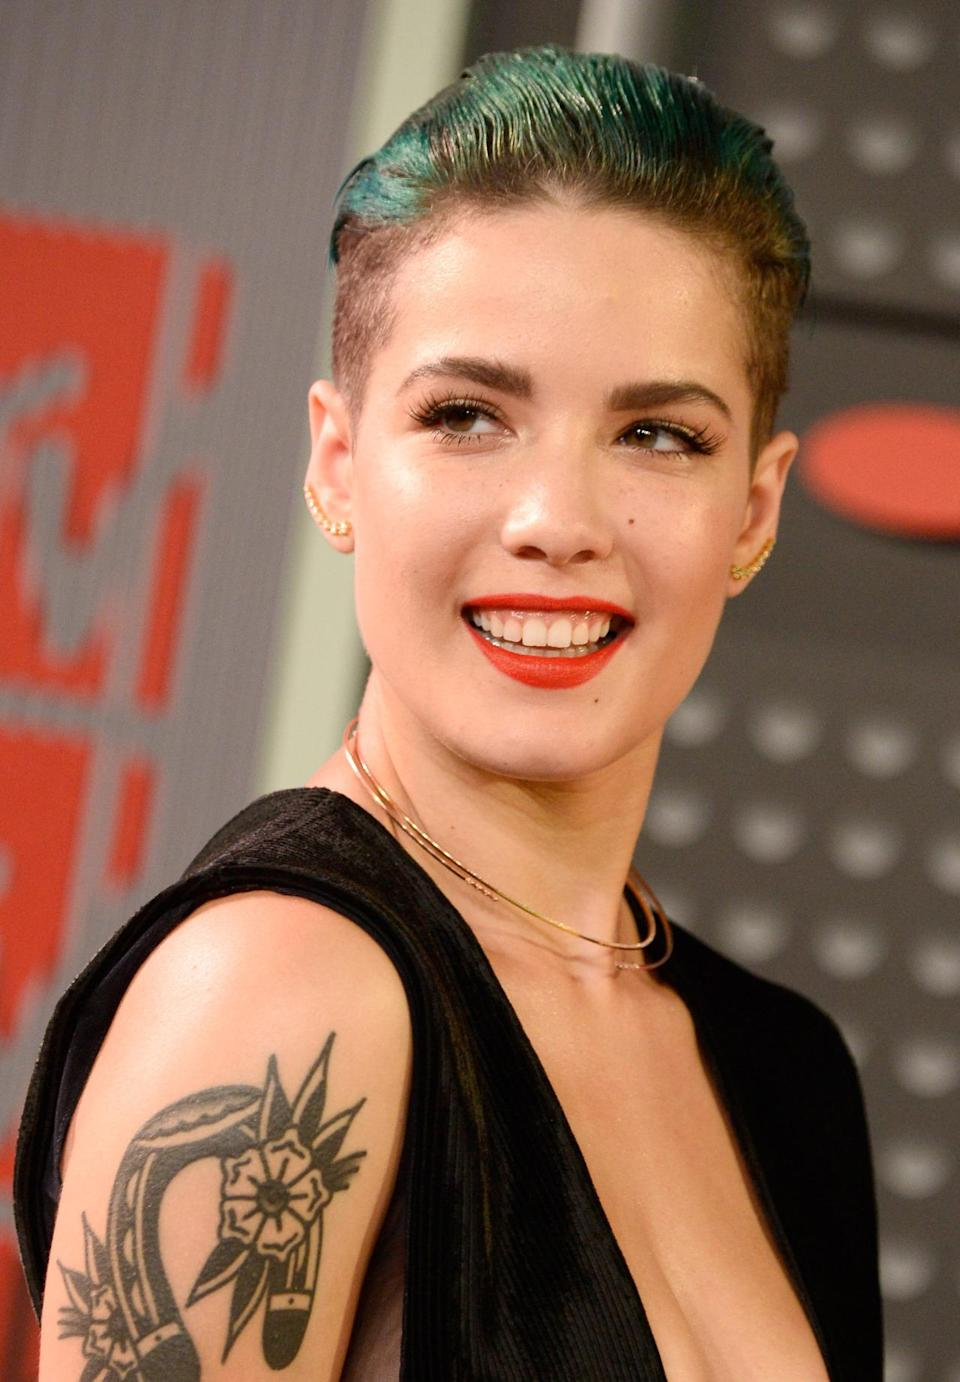 <p>Halsey rocks a tough look on the red carpet: Slicked back green hair and buzzed sides.</p><p>Source: Getty Images<br></p>